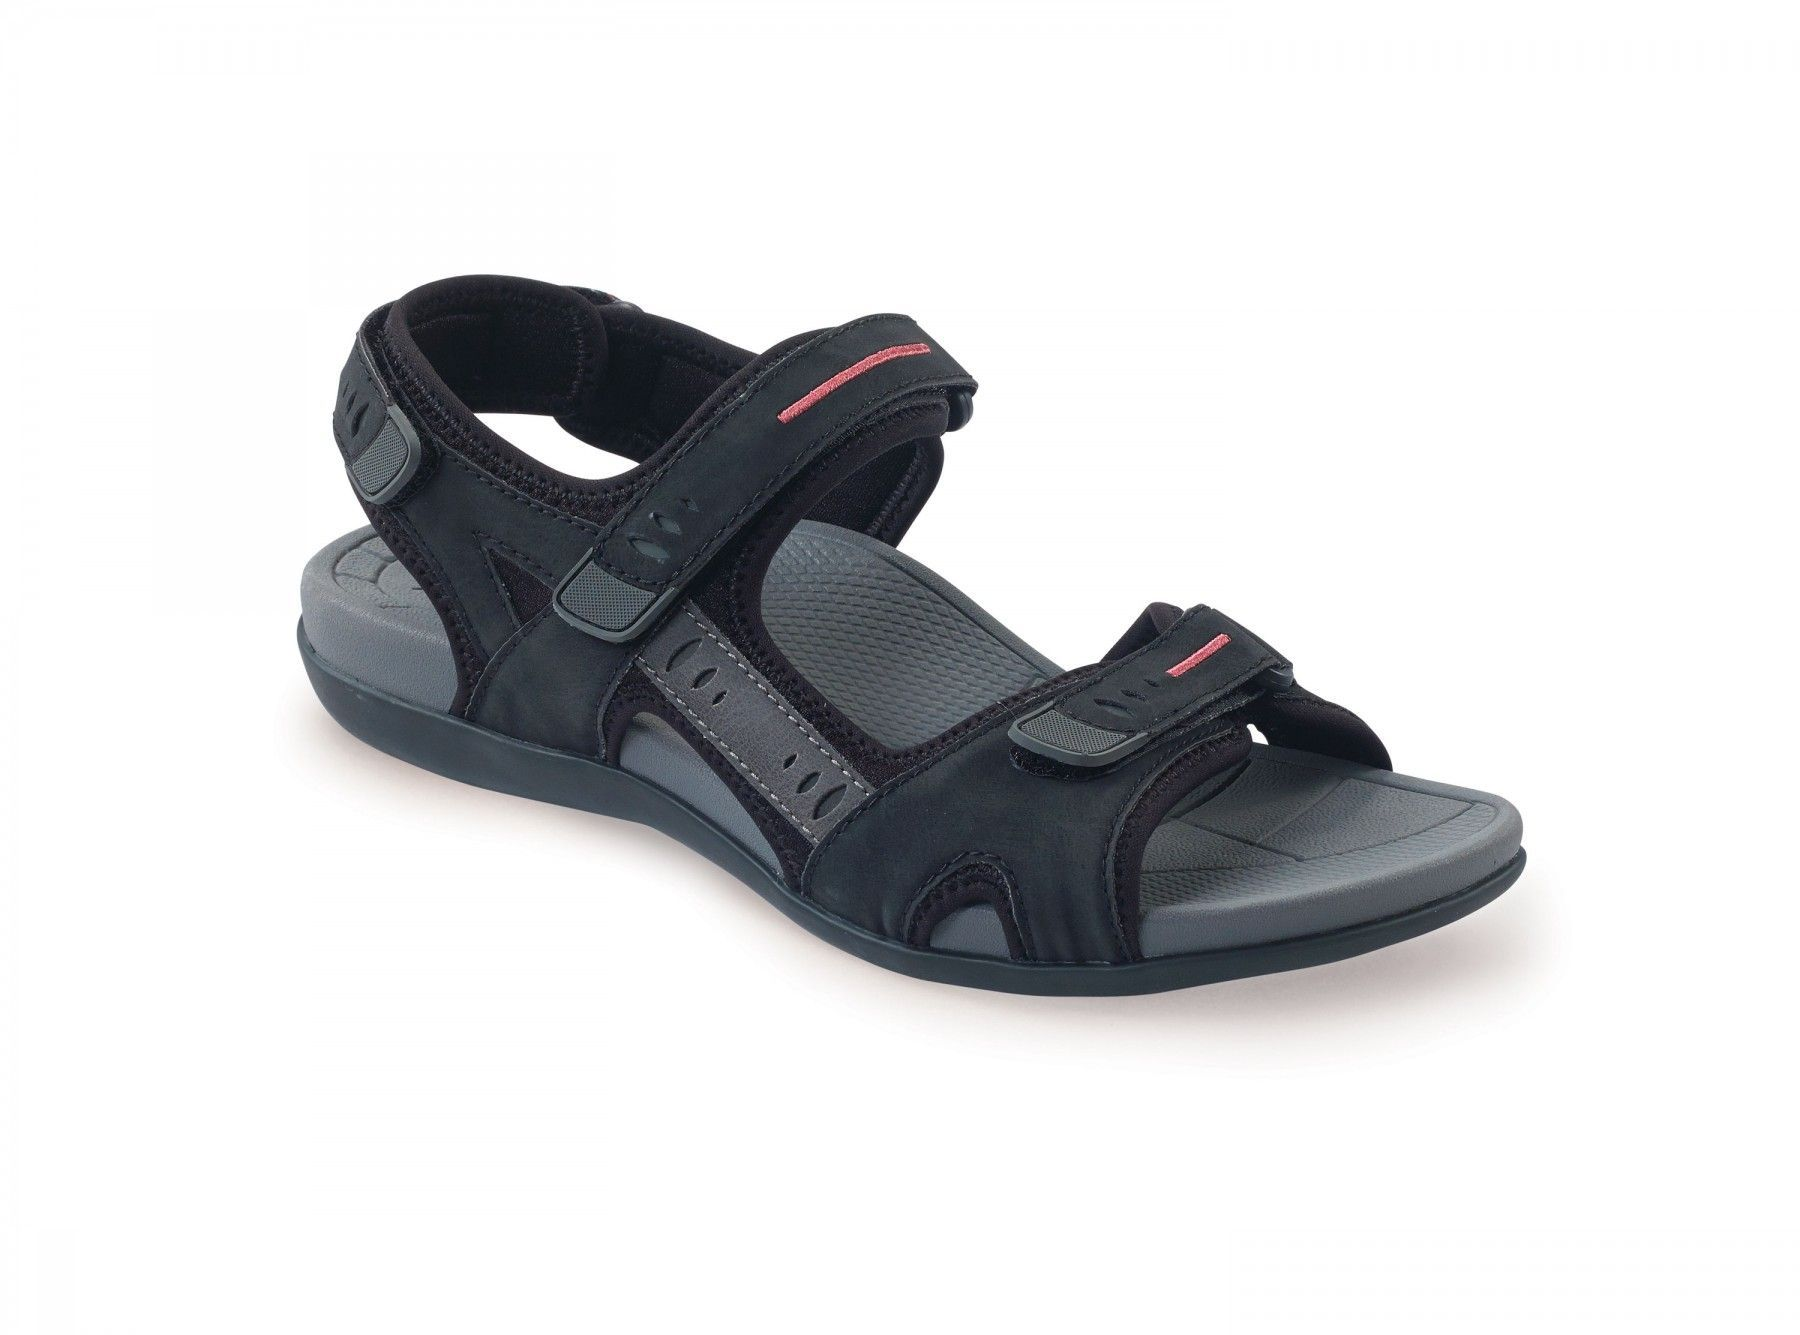 a54a5a0e5f2118 Aetrex Womens - Jackie Black - Comfrotable Sandal - Aetrex Worldwide  Orthotic Comfort Shoes